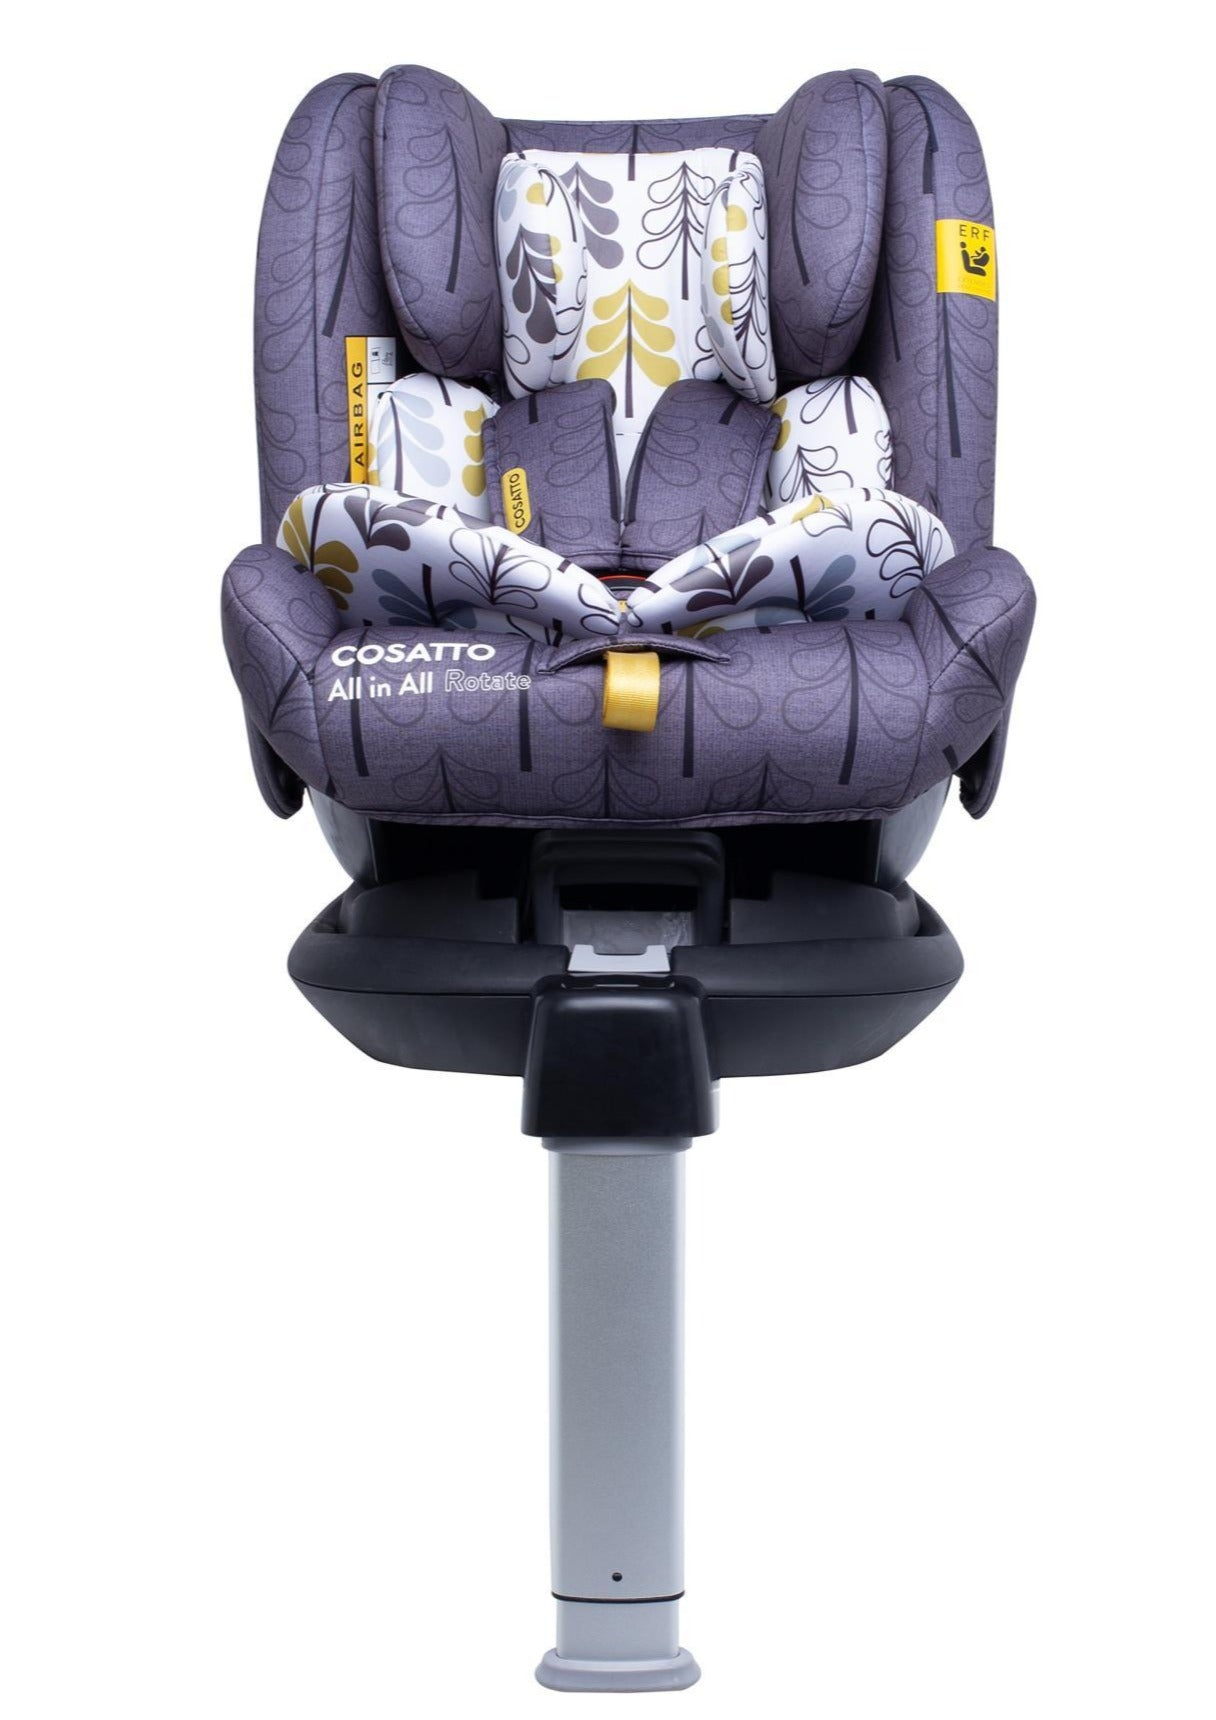 All in All Rotate Car Seat